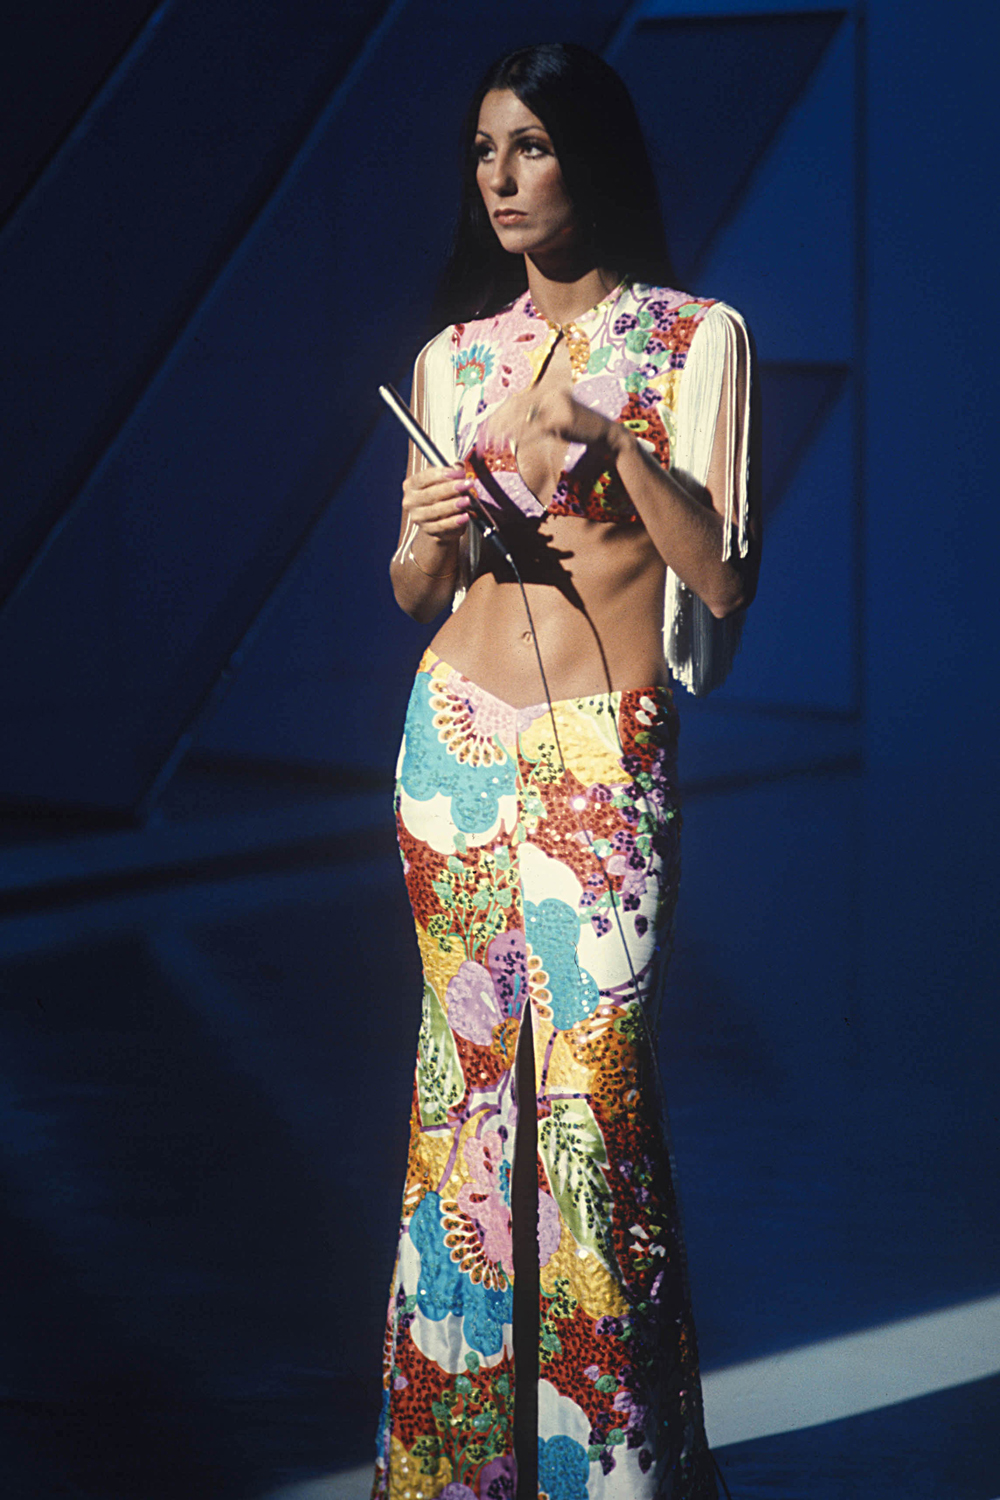 1970s fashion moments